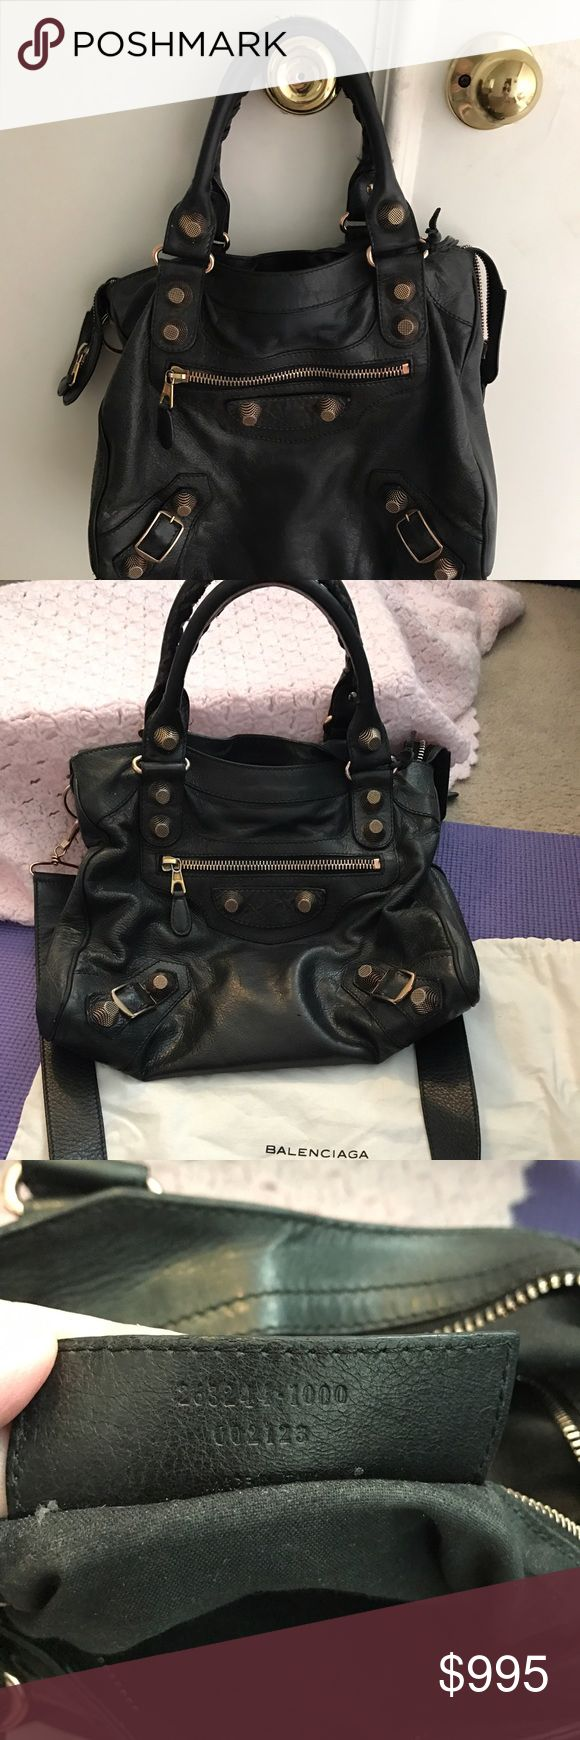 Balenciaga Velo Arena Large used but still has a lot of life. classic beautiful purse. 13x7x2.5. comes with dust bag. wrinkled lambskin. rosegold hardware. Balenciaga Bags Crossbody Bags